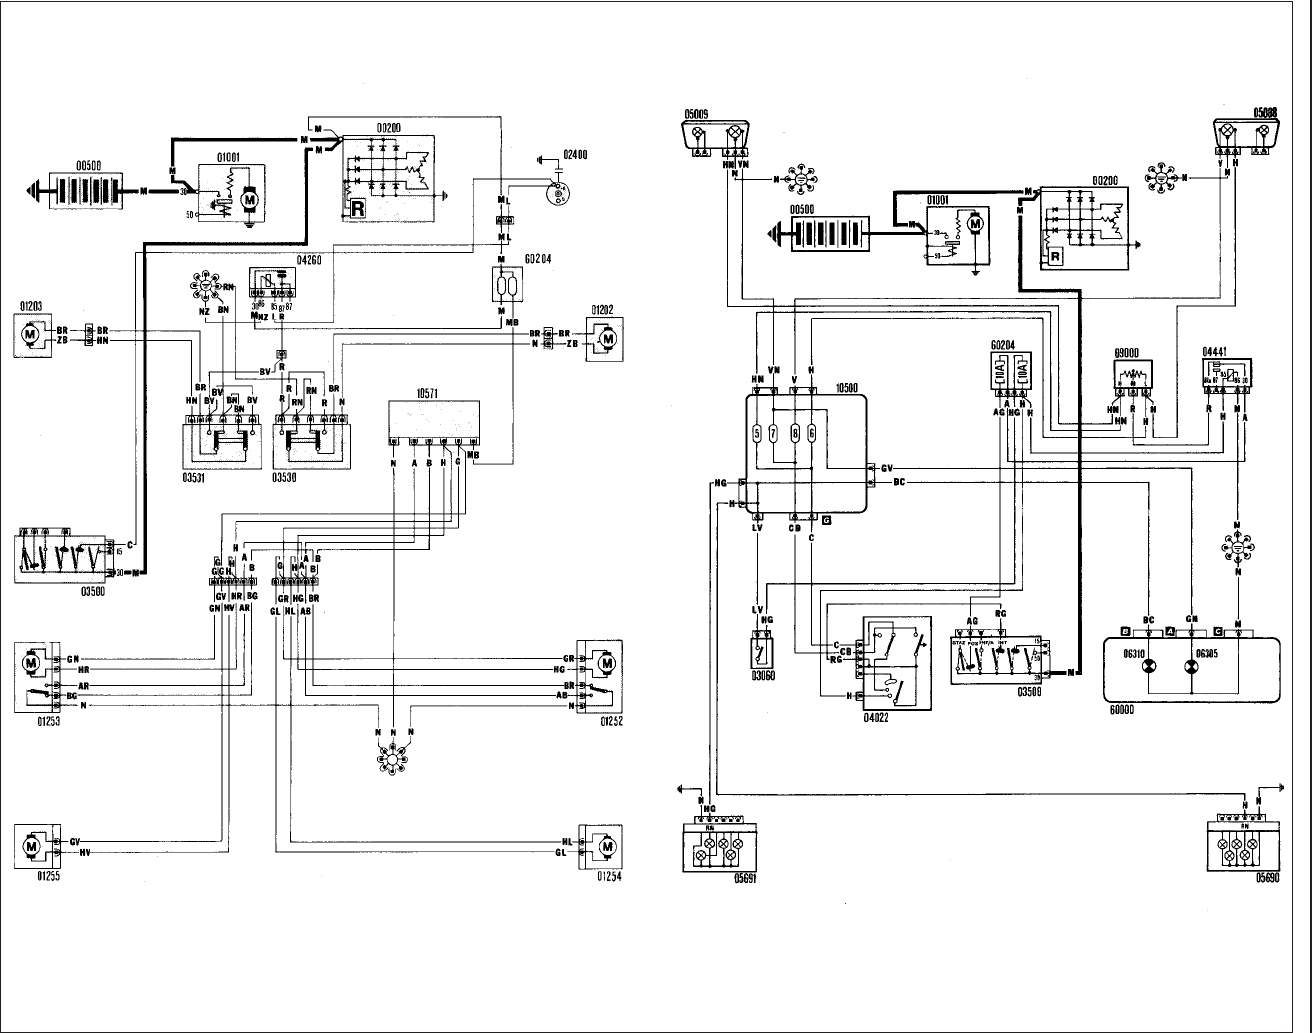 Wiring Diagram For Fiat Scudo Manual Of 1981 Diagrams Stateofindiana Co